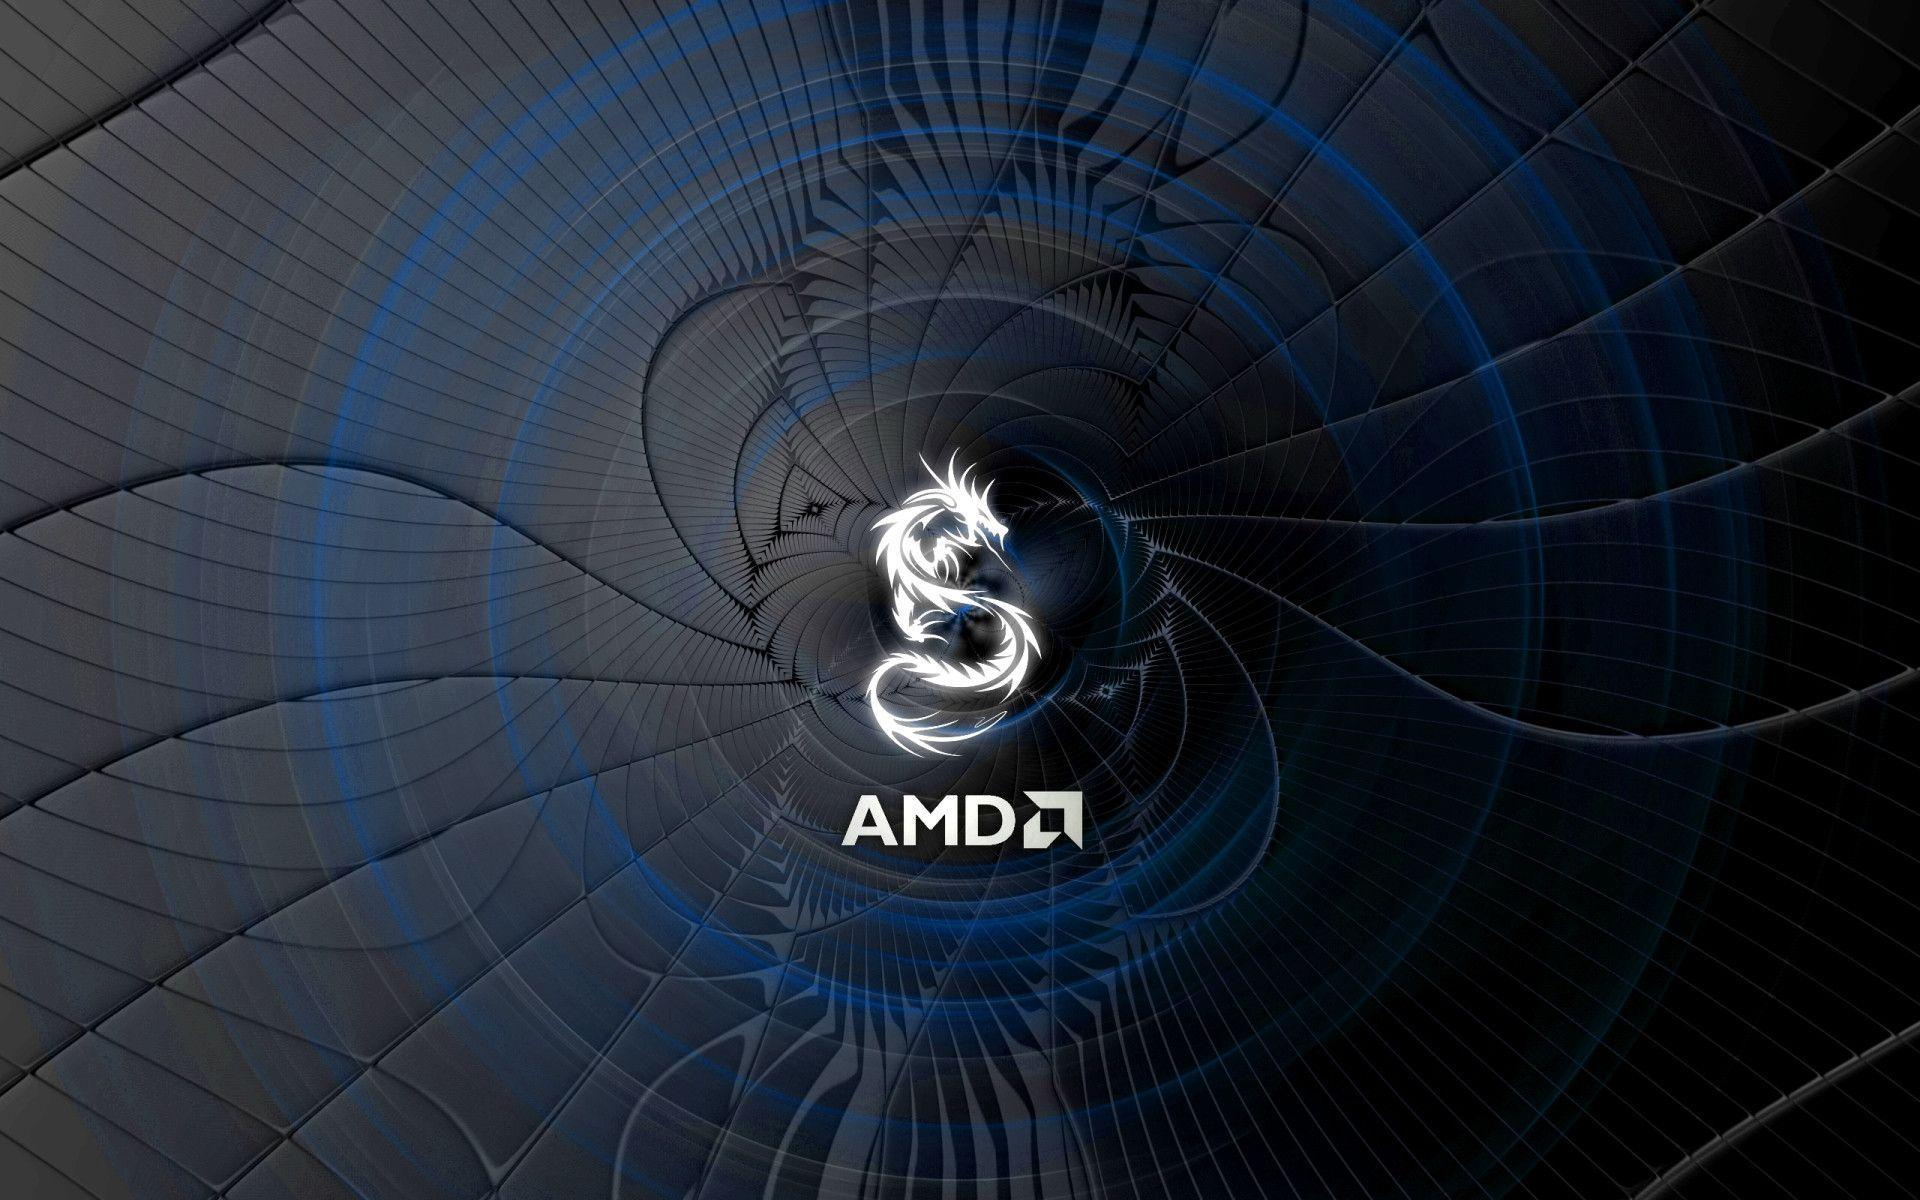 amd radeon wallpapers hd - photo #22